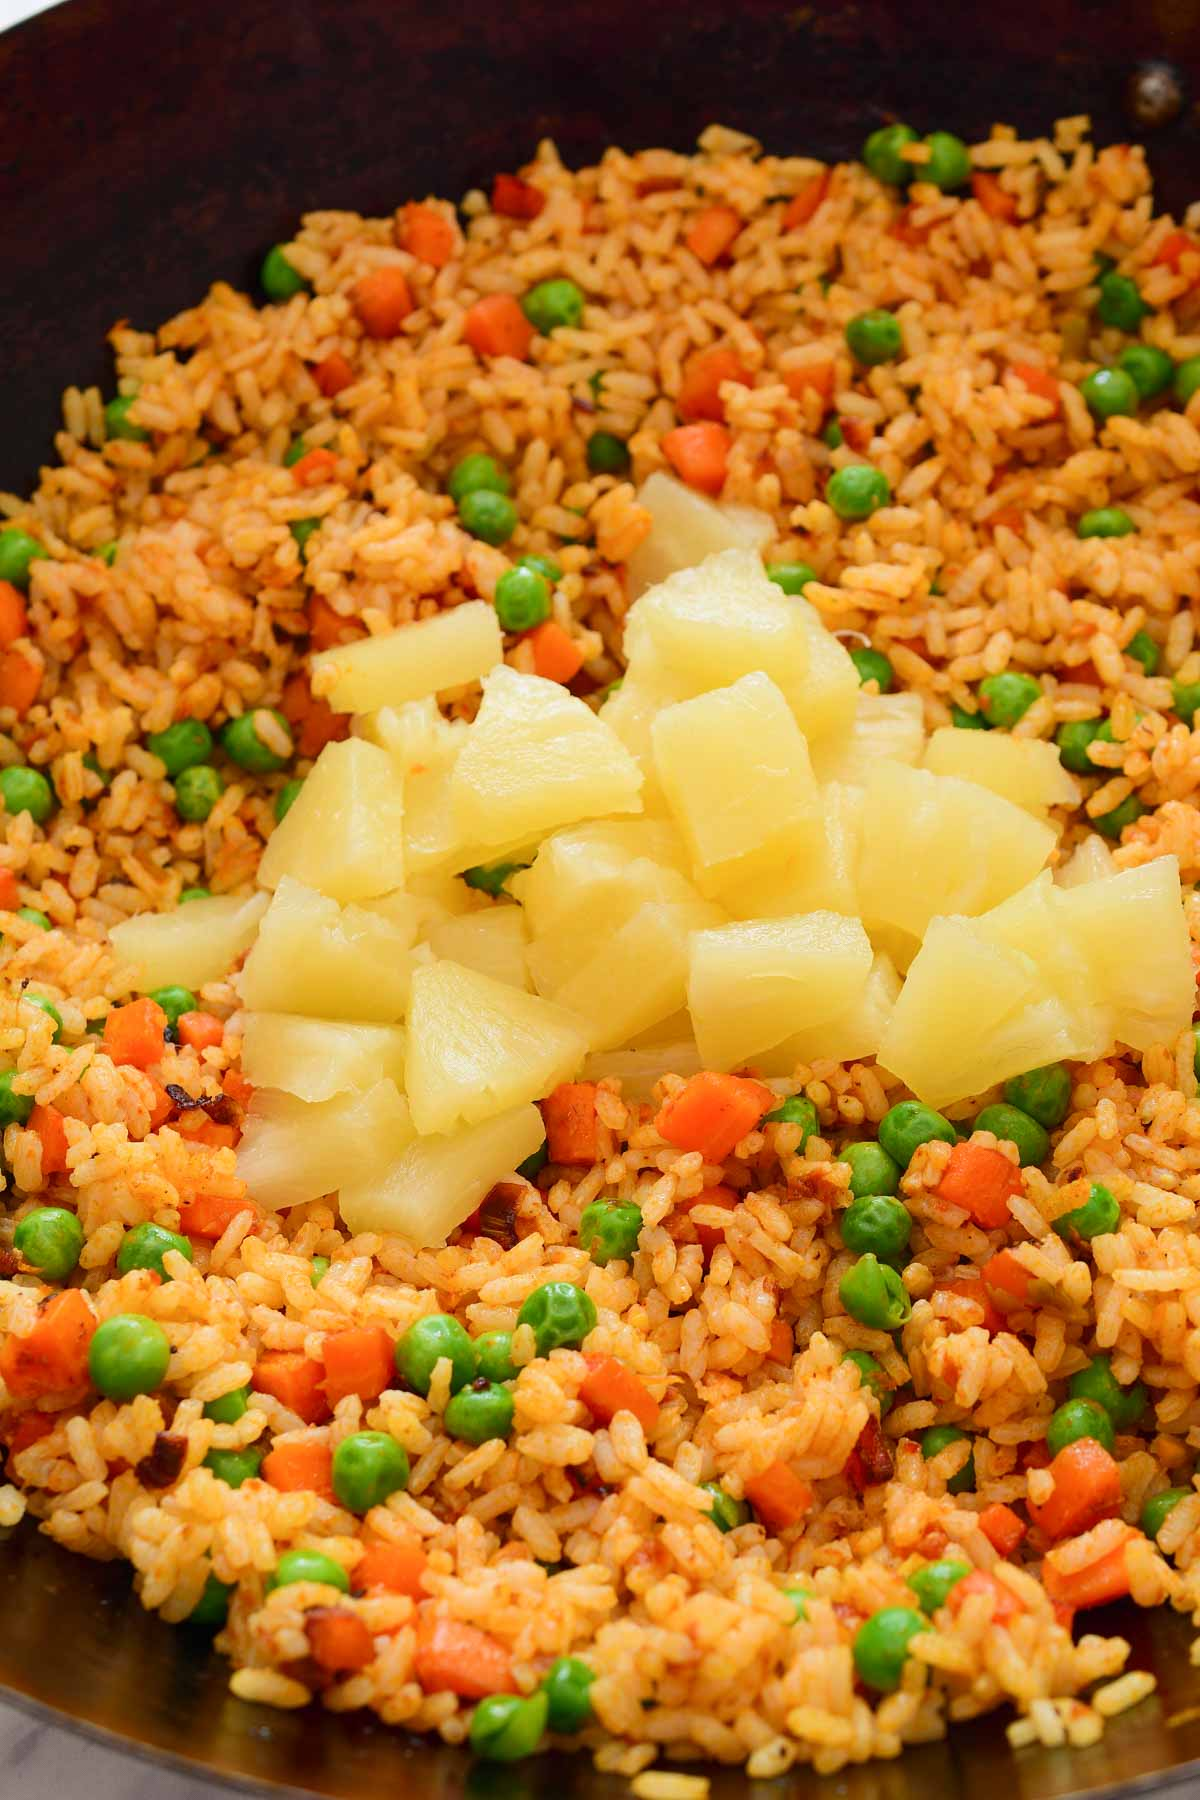 A wok filled with fried rice with a pile of chopped pineapple on top.